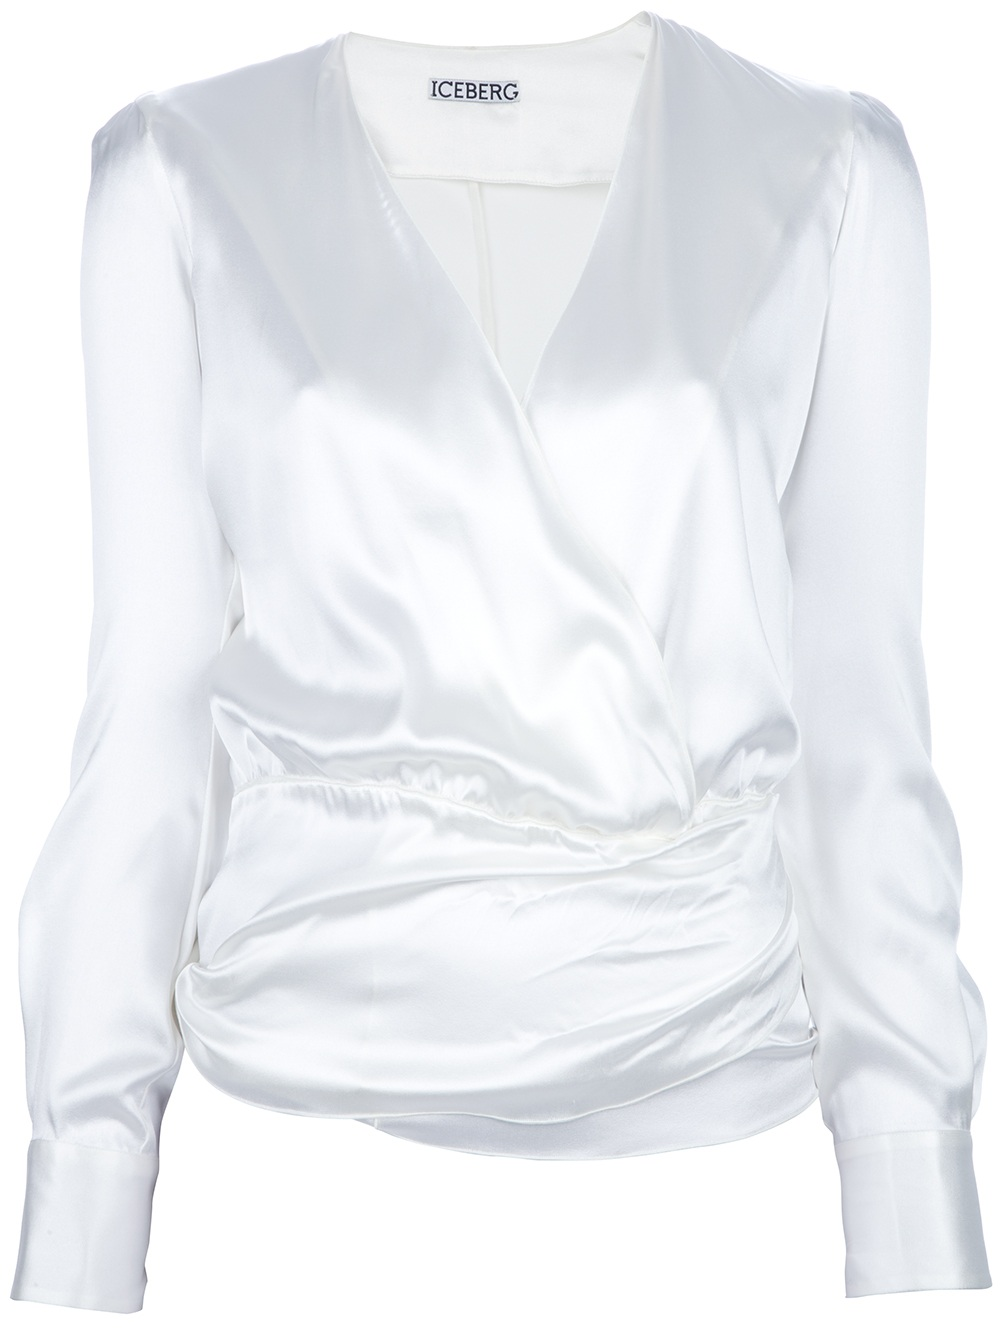 Iceberg Wrap Around Blouse in White | Lyst